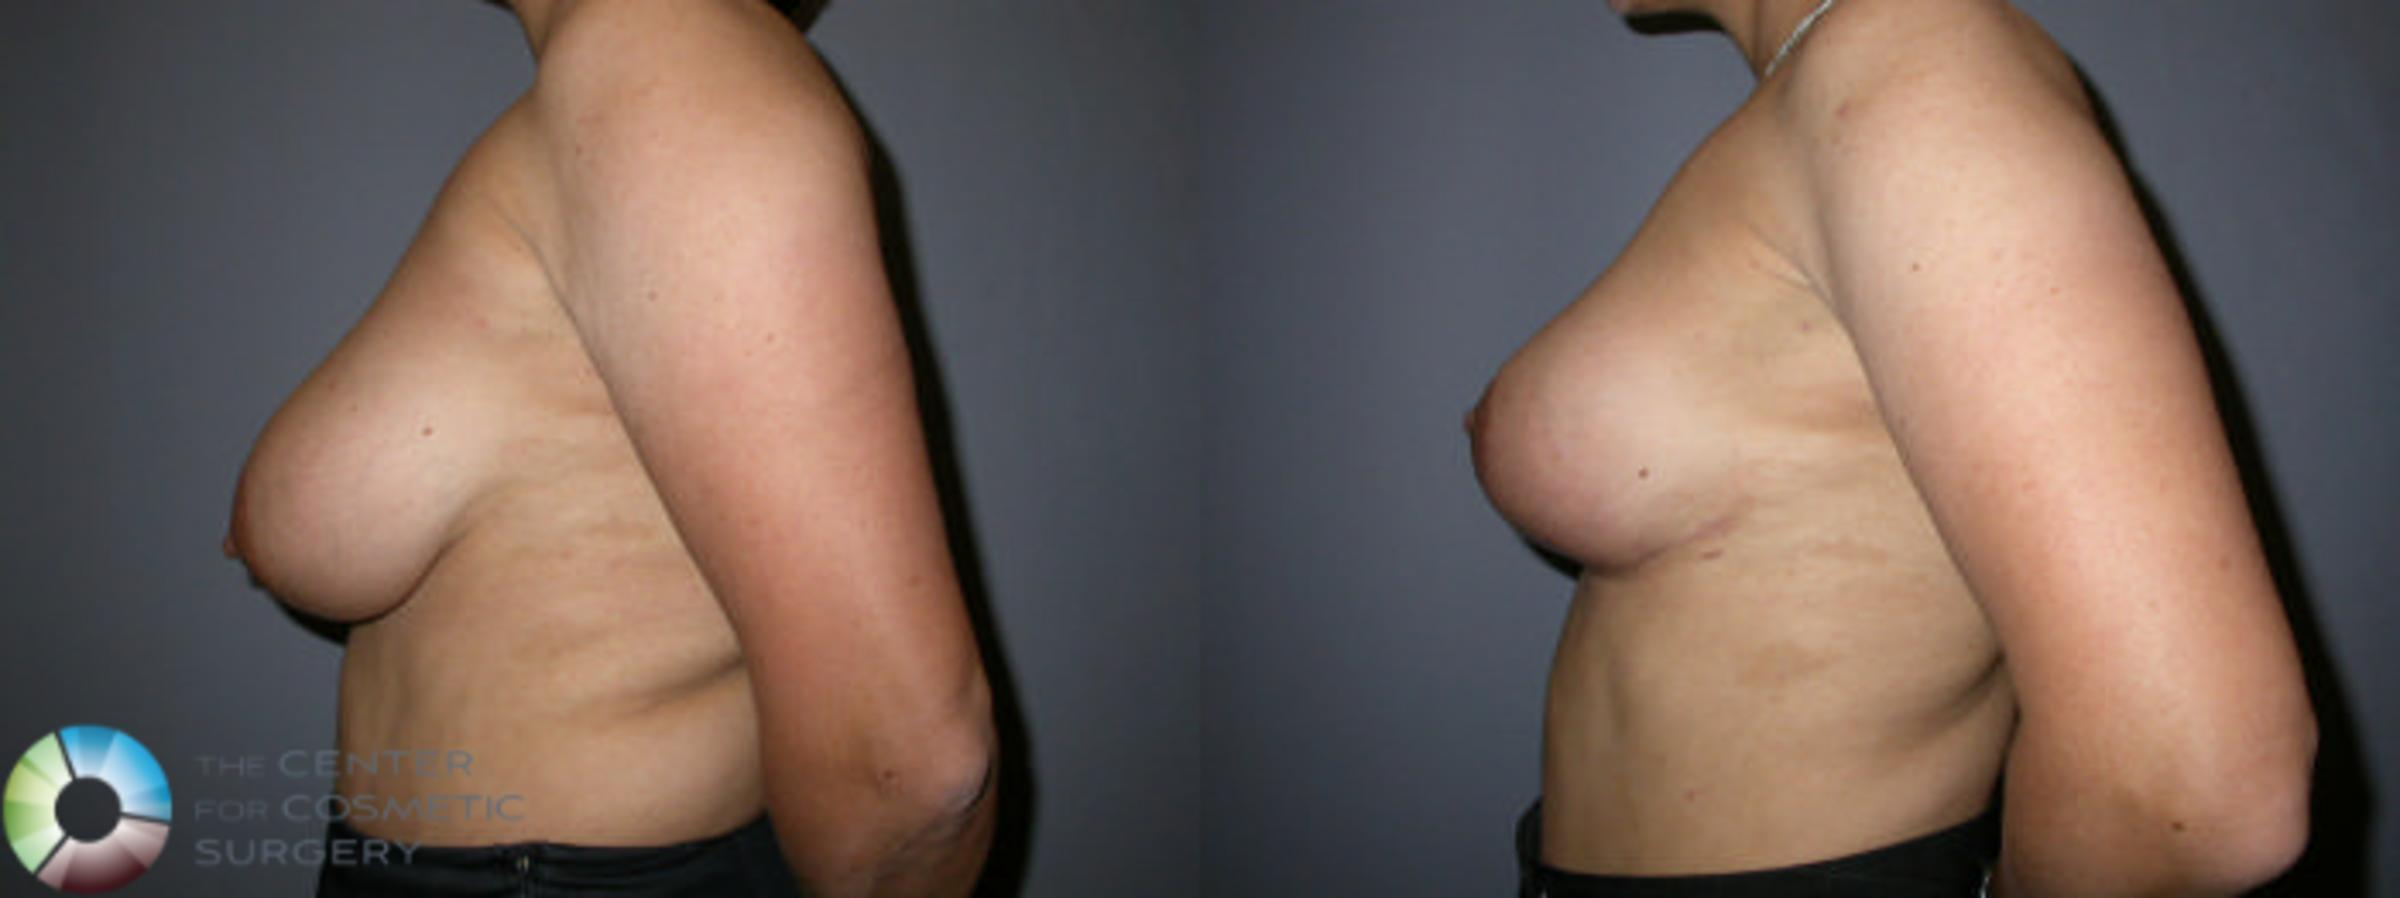 Breast Reduction Case 59 Before & After View #3 | Golden, CO | The Center for Cosmetic Surgery